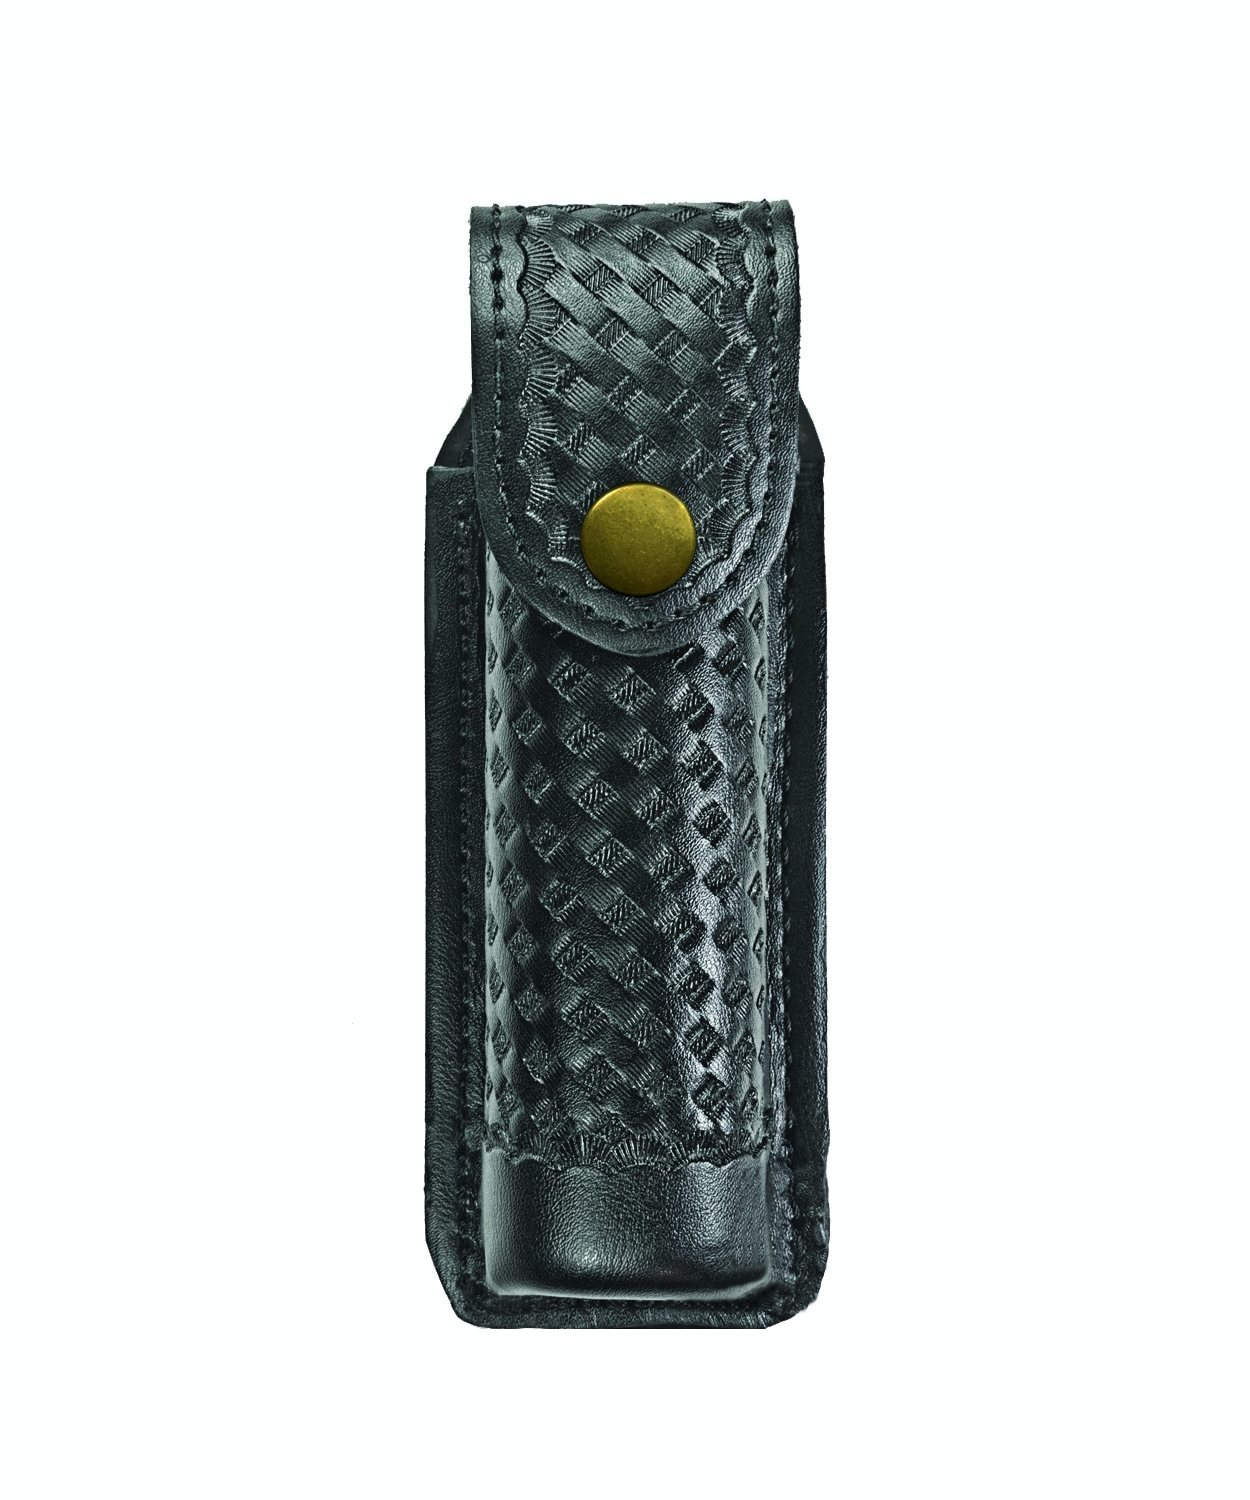 O.C. (Pepper) Spray Case, Medium, MK4, AirTek, BW, Gold Snap-